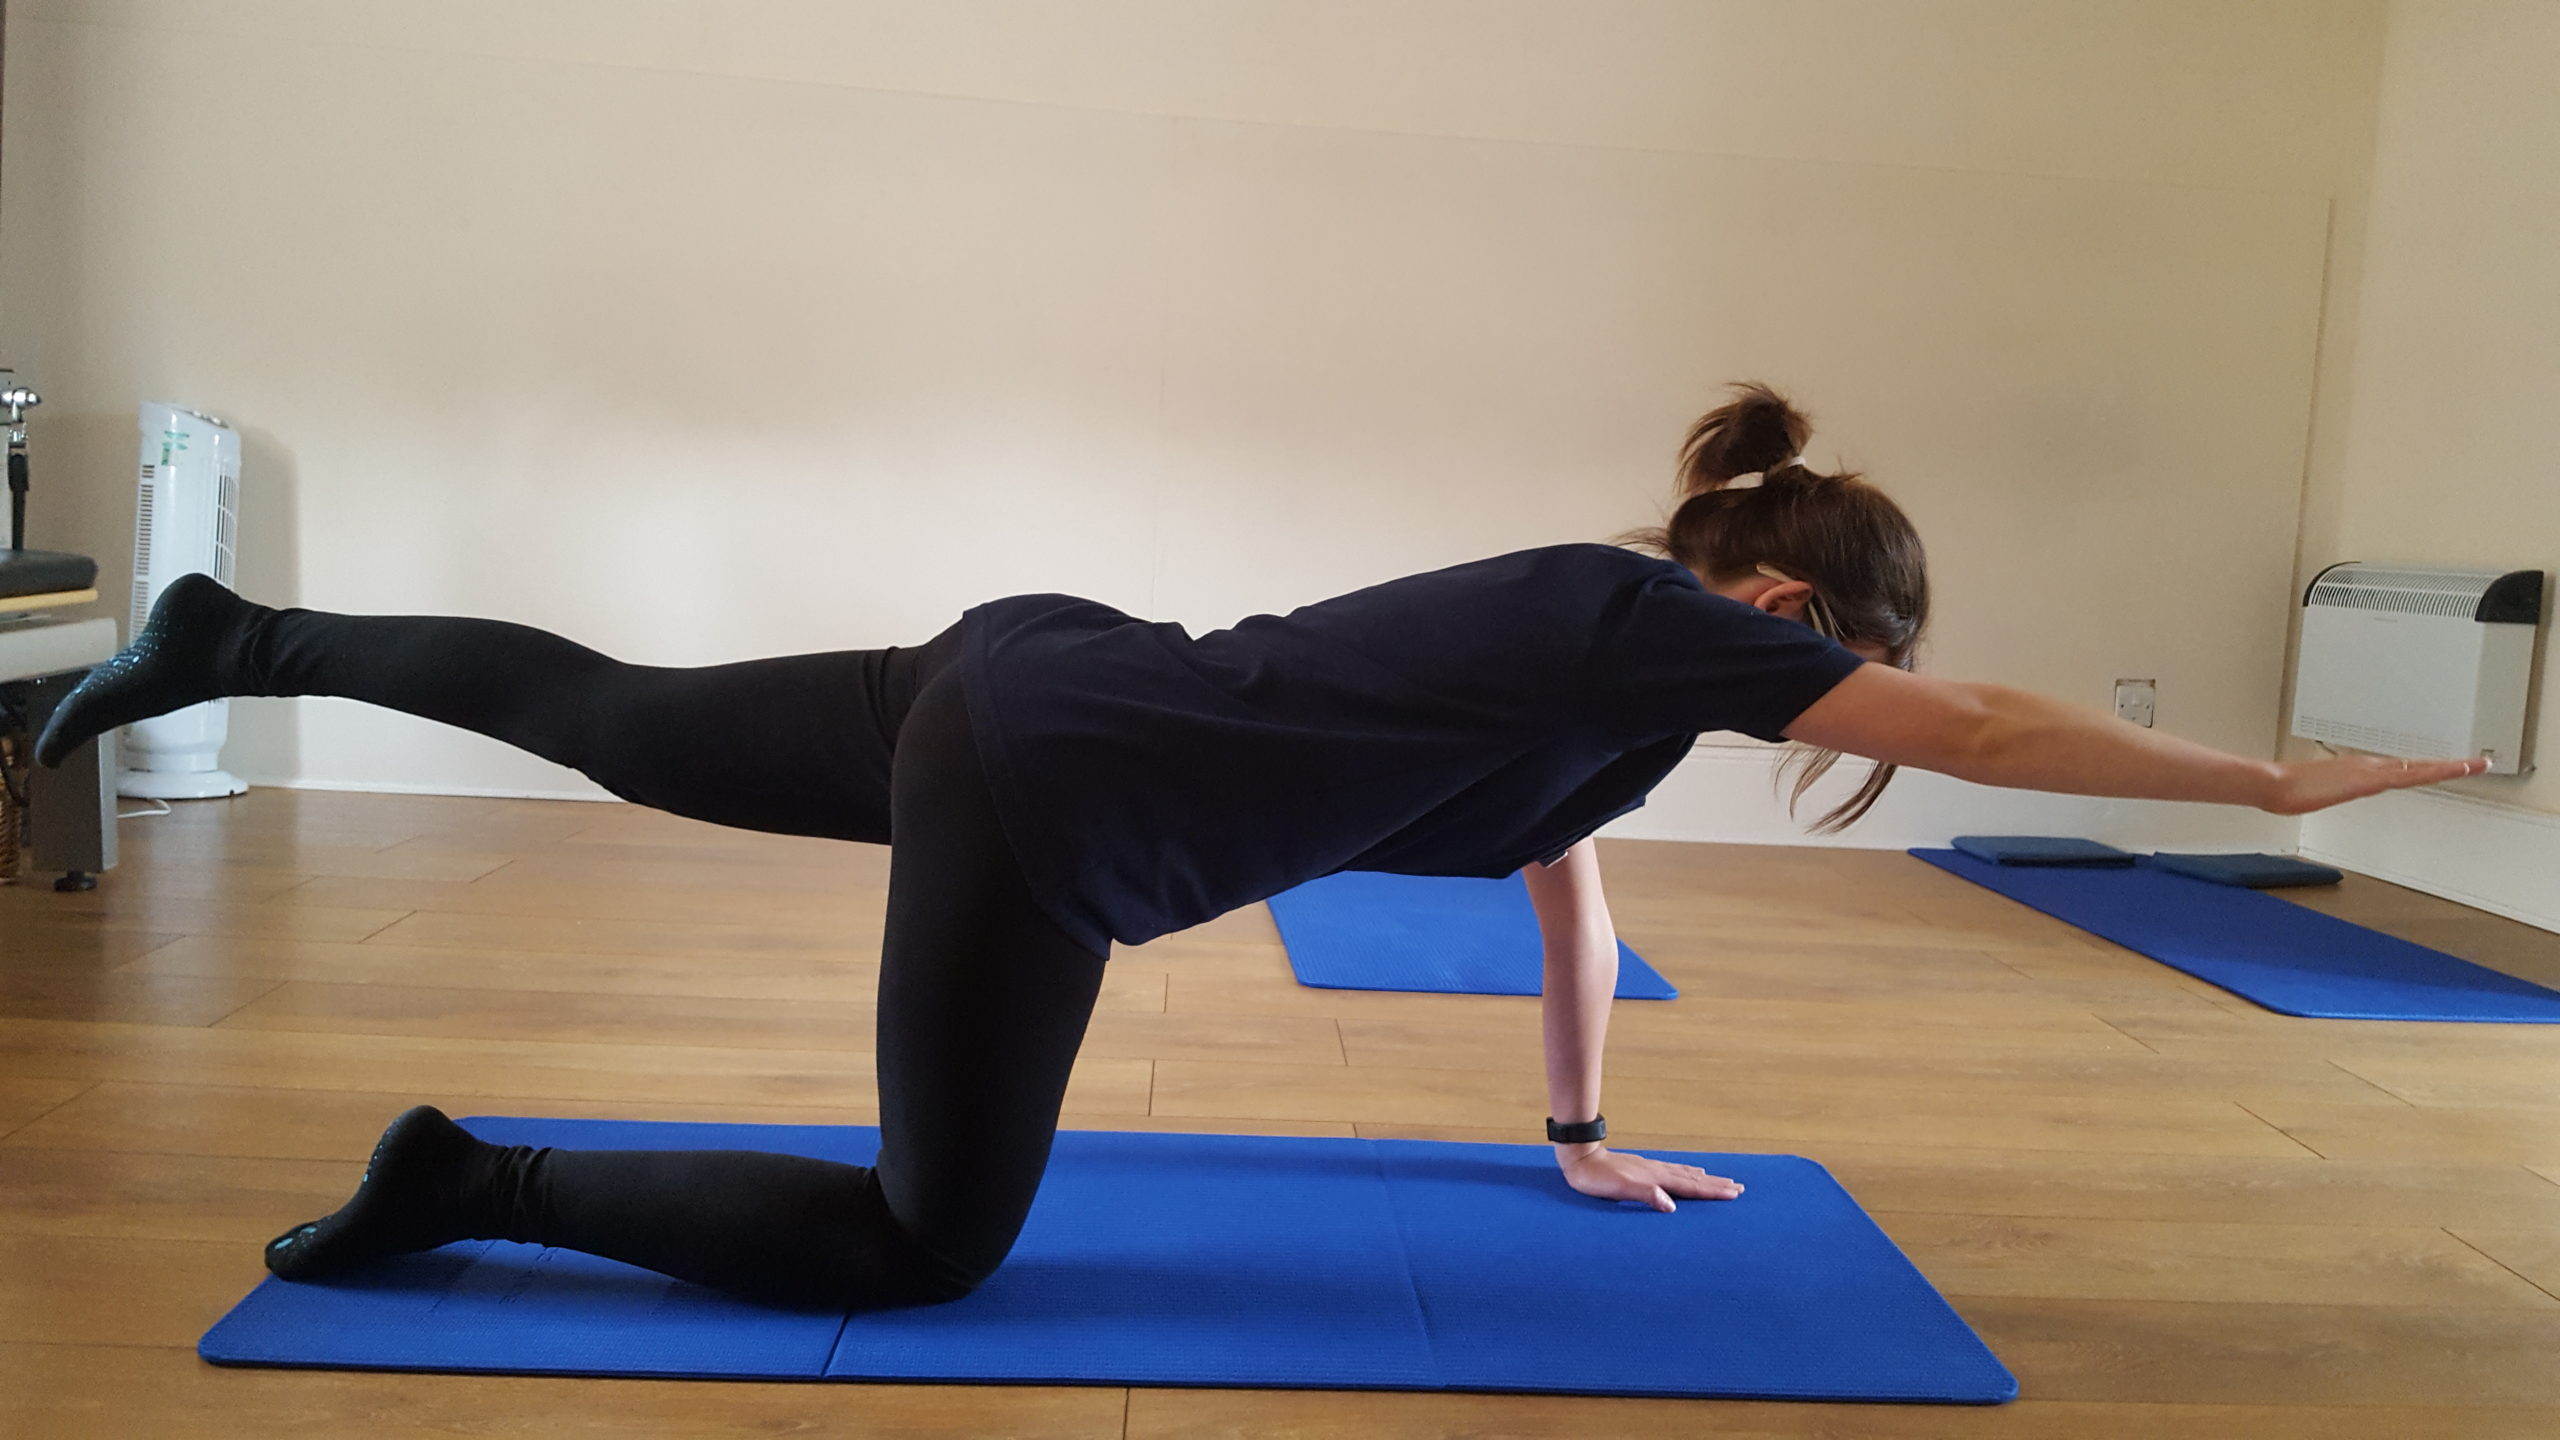 swim lane end pilates for back pain - Woodside Clinic osteopathy pilates in Leighton Buzzard